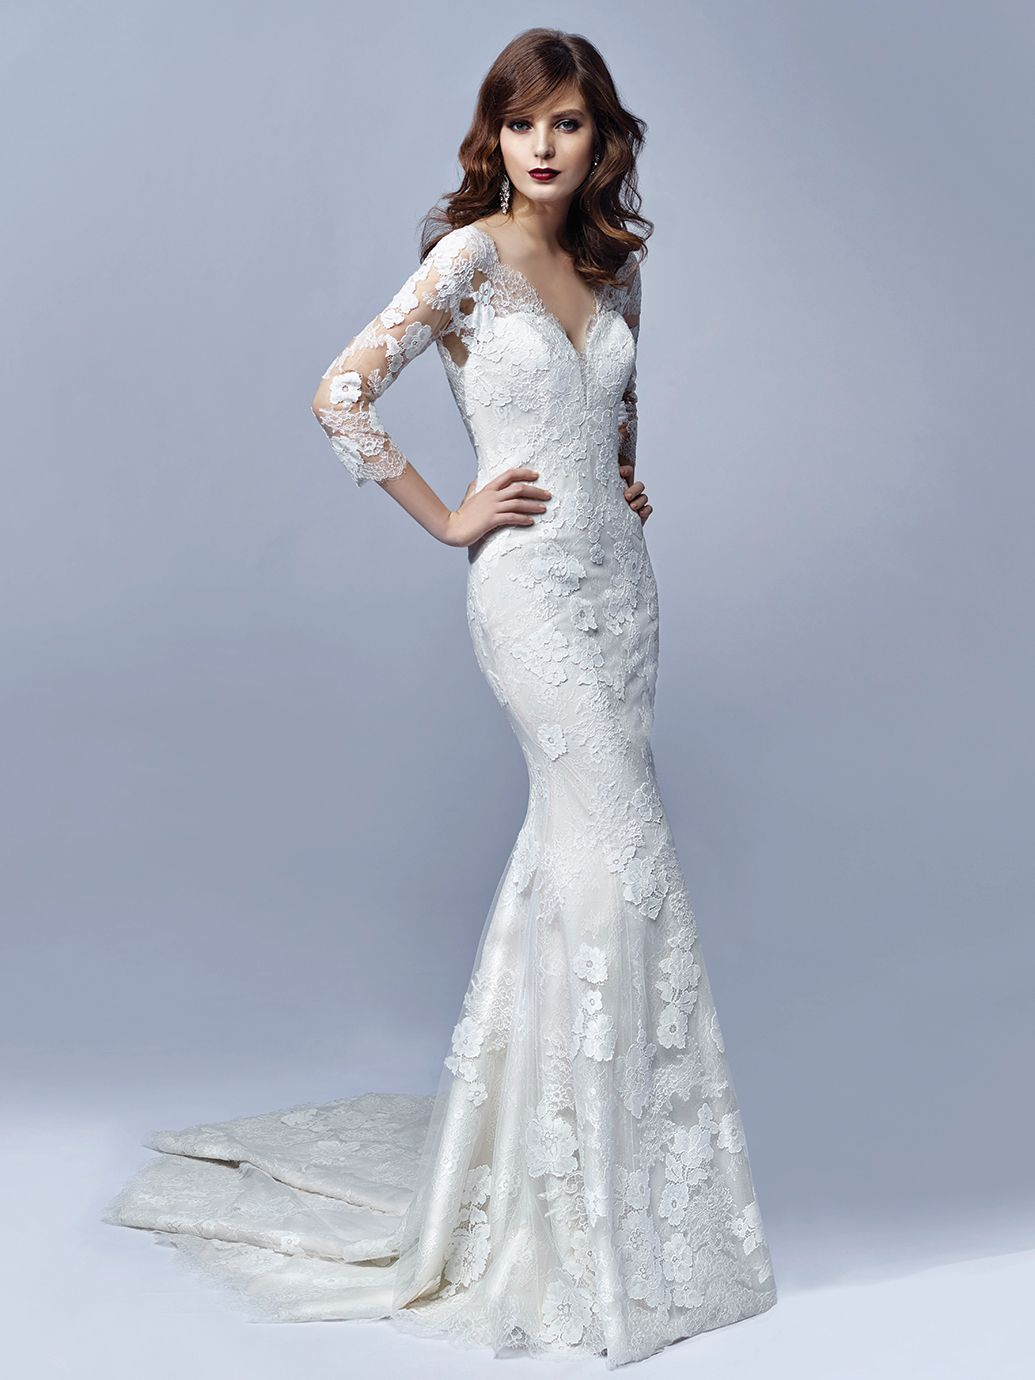 Jojo dress front image wedding ideas pinterest lace wedding